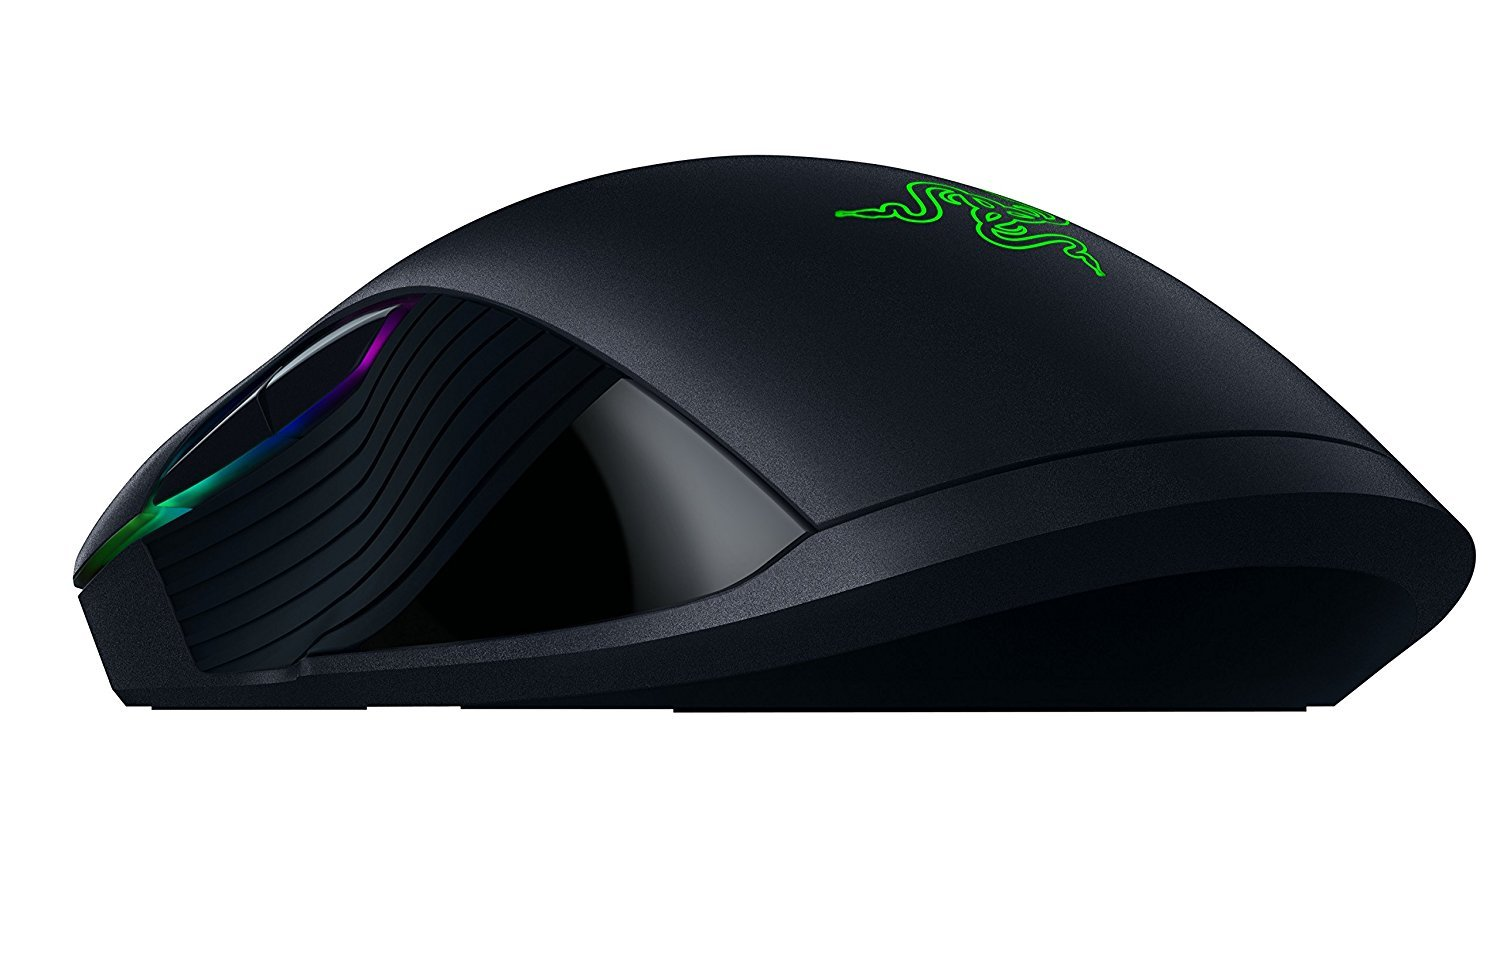 Razer Lancehead Tournament Edition Ambidextrous Gaming Mouse for PC image